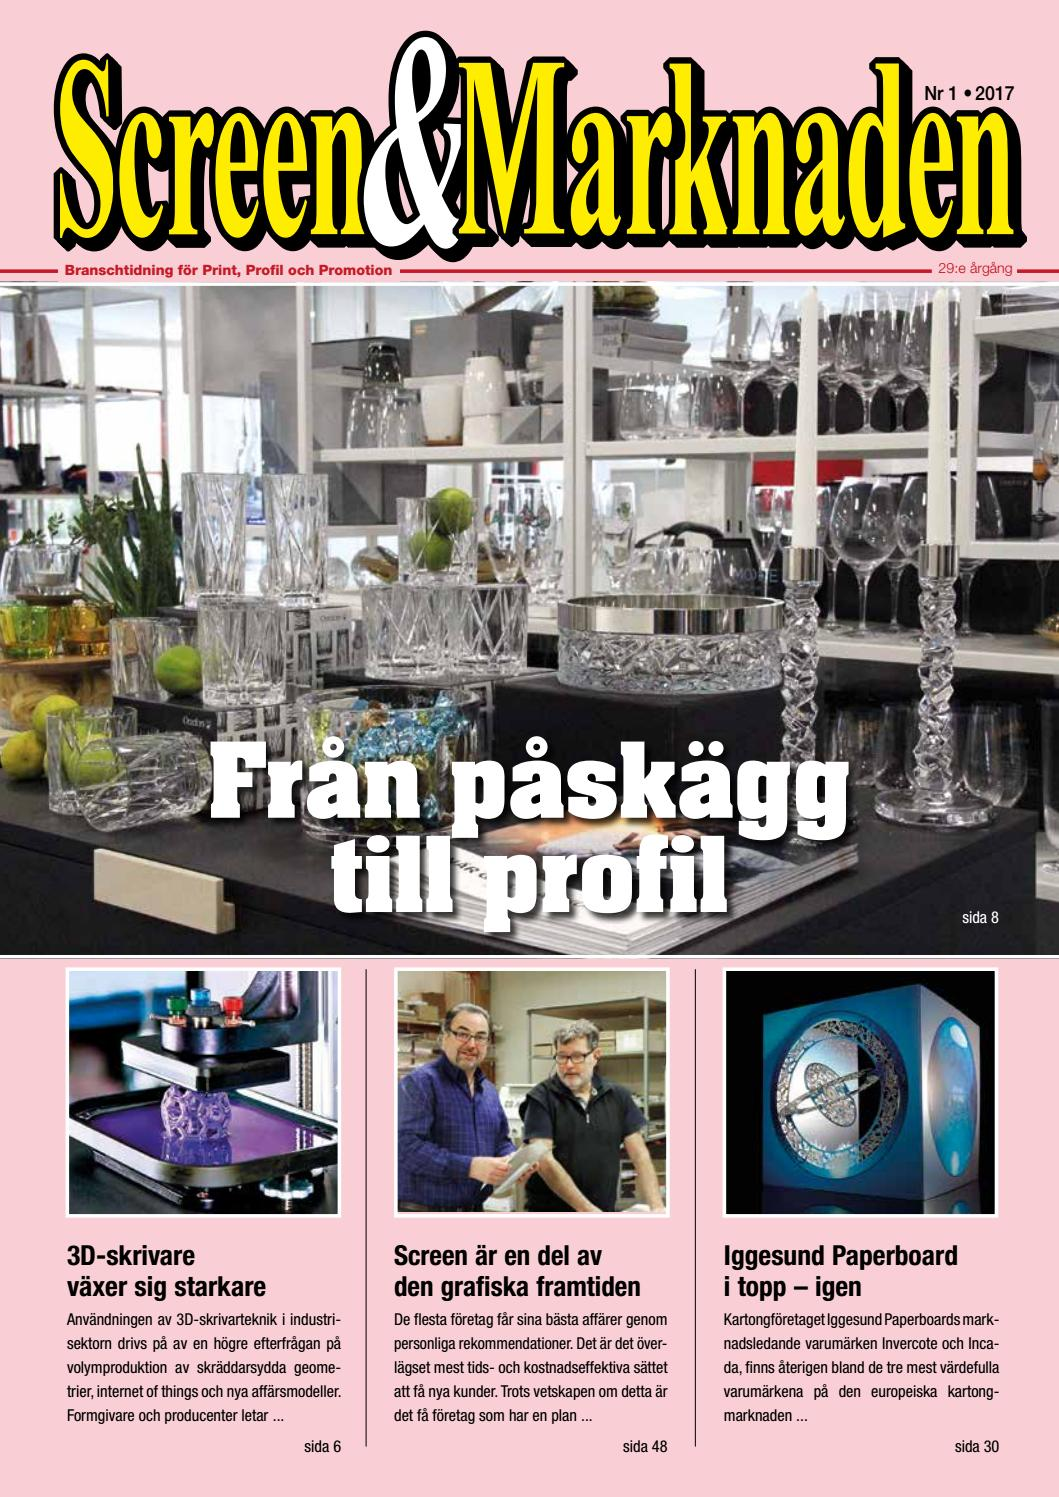 Screenmarknaden 1 2017 by Martin Eriksson - issuu bfb3e8d25d116